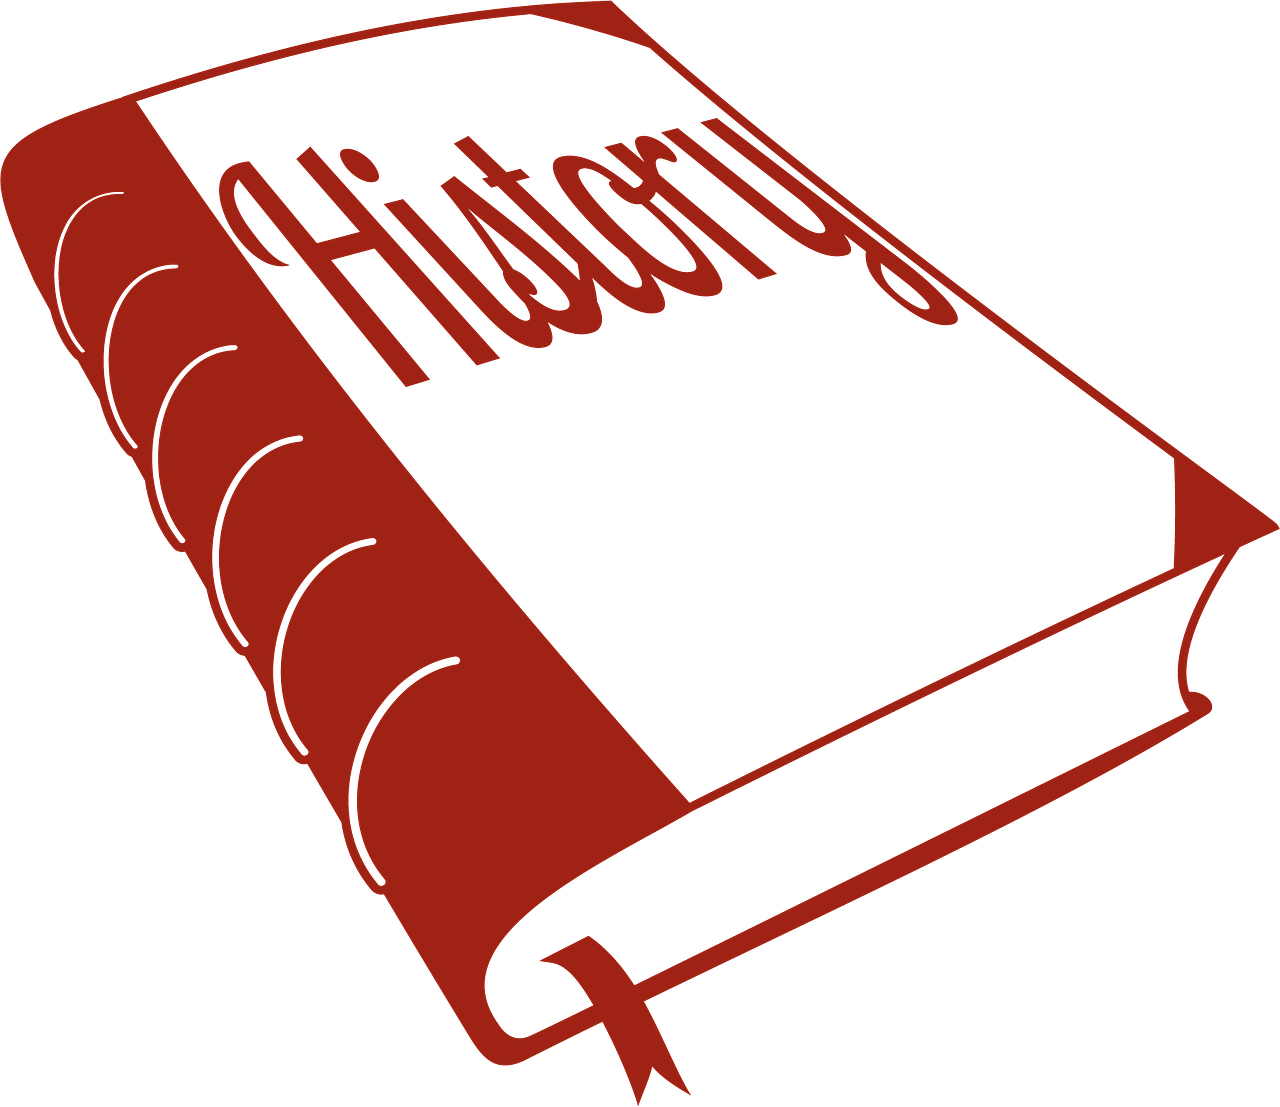 Outline red history book clipart the cliparts.